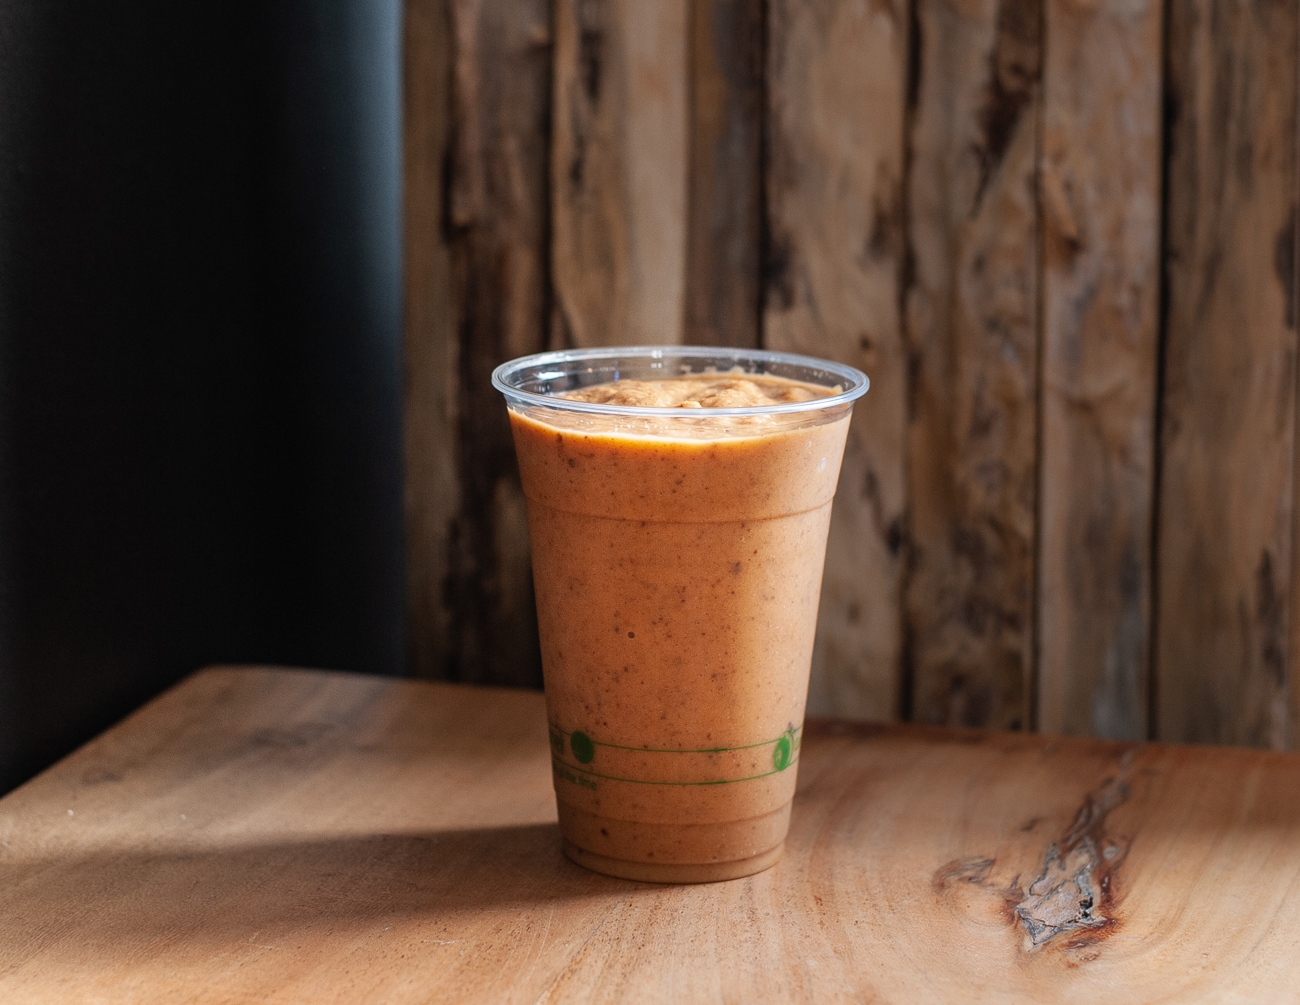 Morning Glory Smoothie: carrot, turmeric, avocado, vanilla rice milk, organic raisins, and cinnamon / Image: Kellie Coleman // Published: 12.27.20